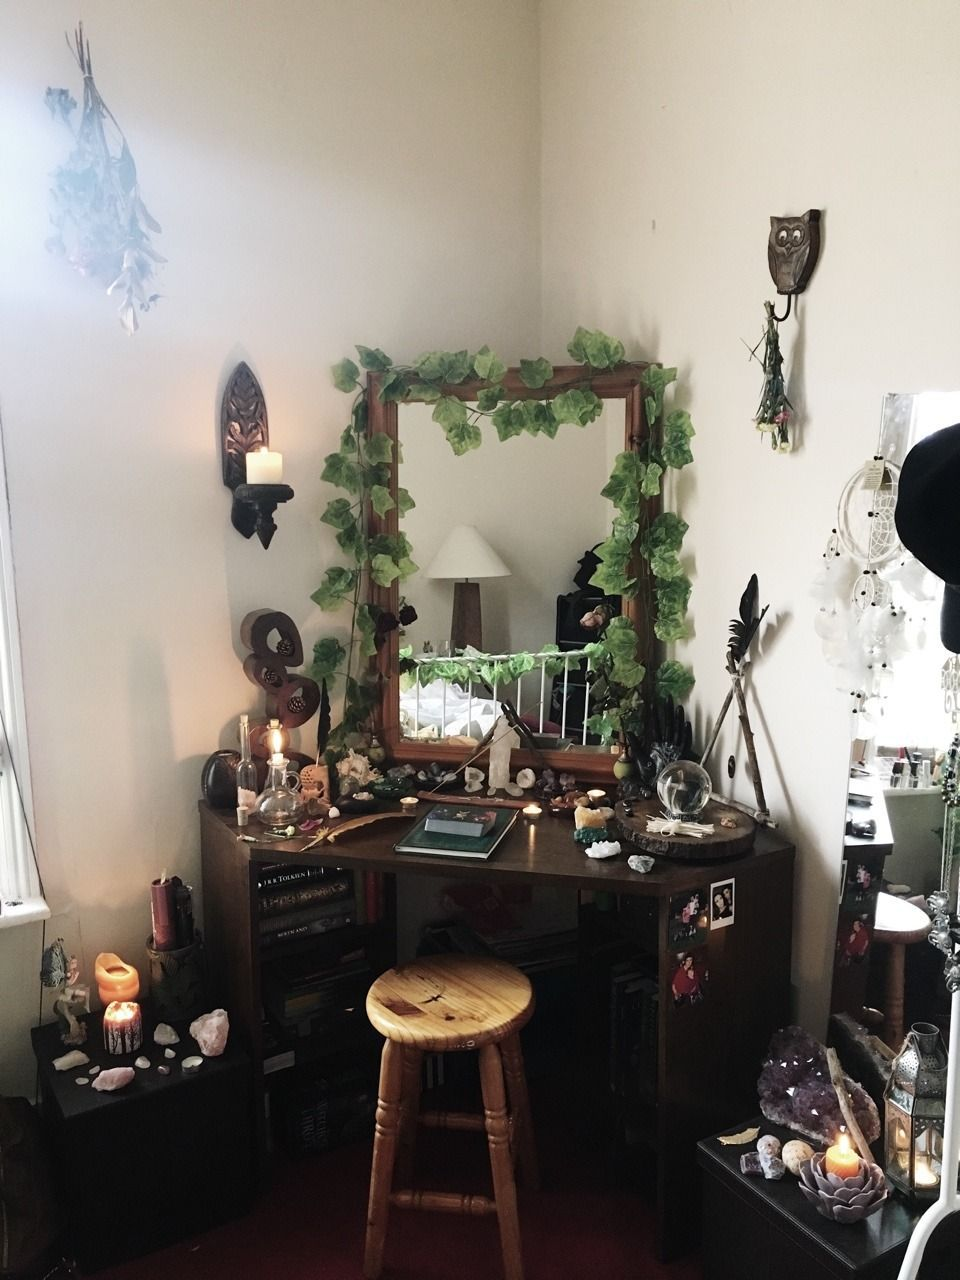 "Schlafzimmer Energetisch Einrichten Curuni: ""reasons Why My Altar Is So Important To Me; It's The One Thing I Have Complete Control Over… 